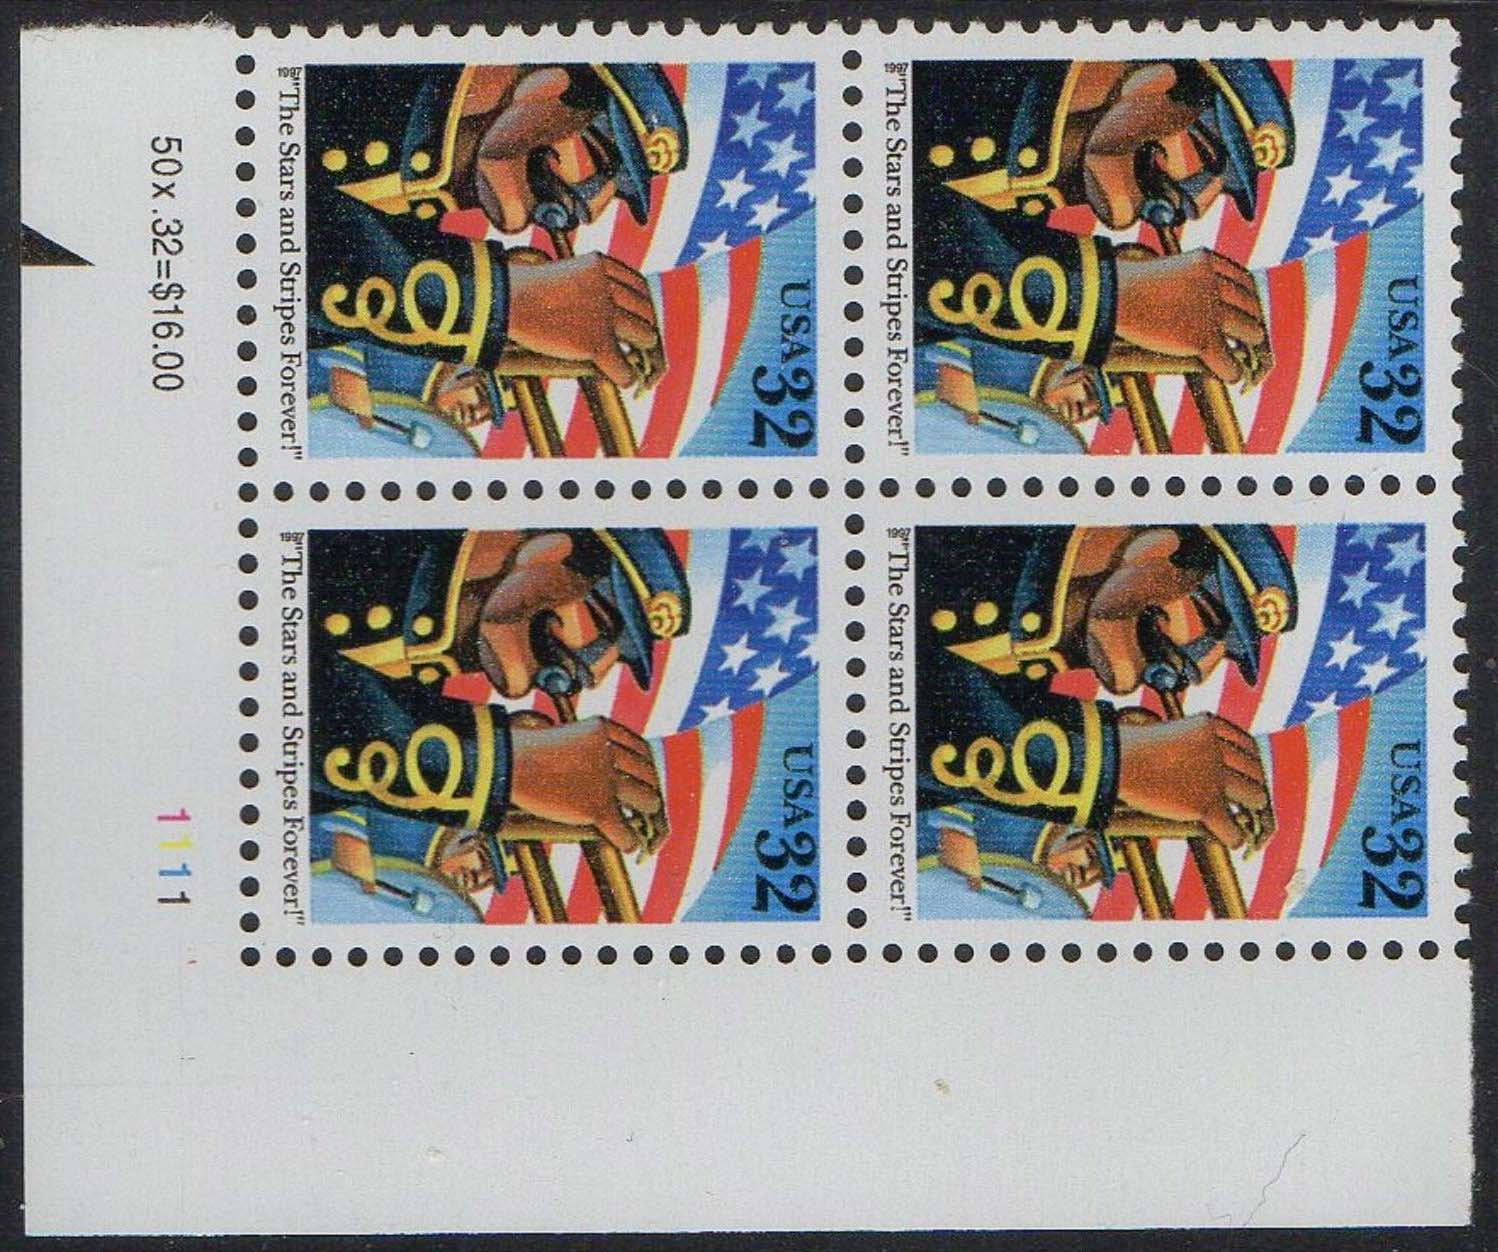 "Scott 3153 Plate Block of 4 (32 cents) <p> <a href=""/images/USA-Scott-3153-PB.jpg""><font color=green><b>View the image</a></b></font>"